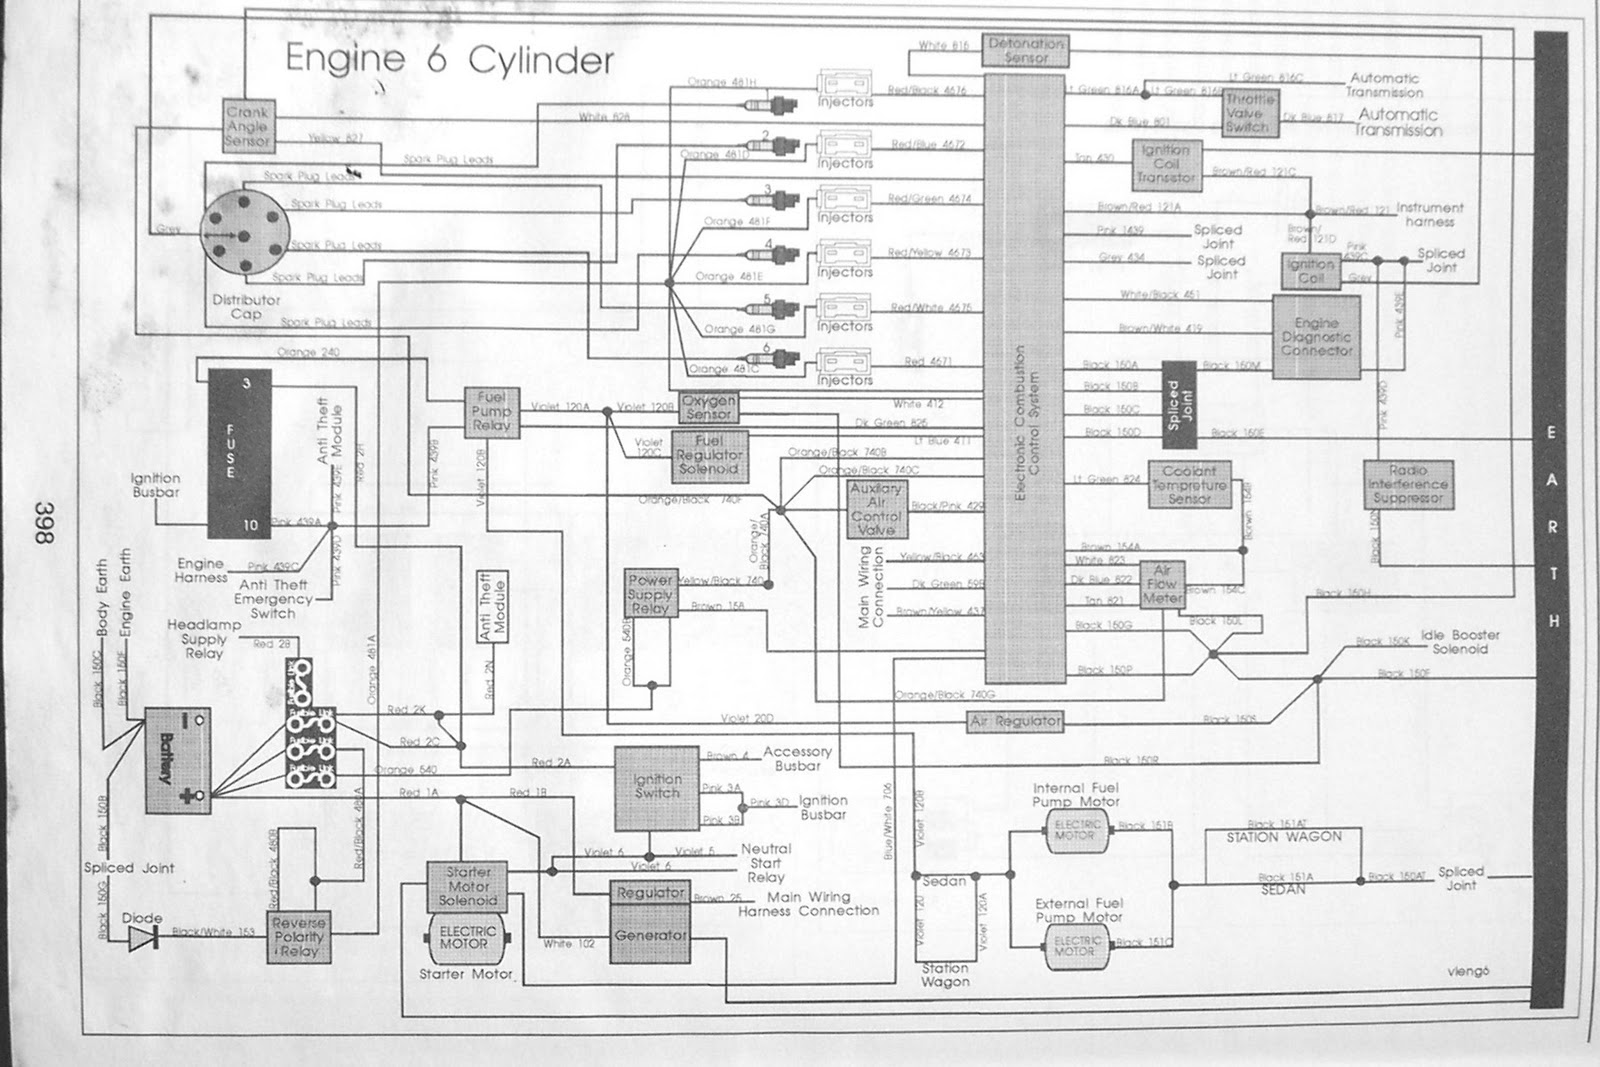 14b vt commodore wiring diagram efcaviation com vt commodore fuel pump wiring diagram at gsmportal.co